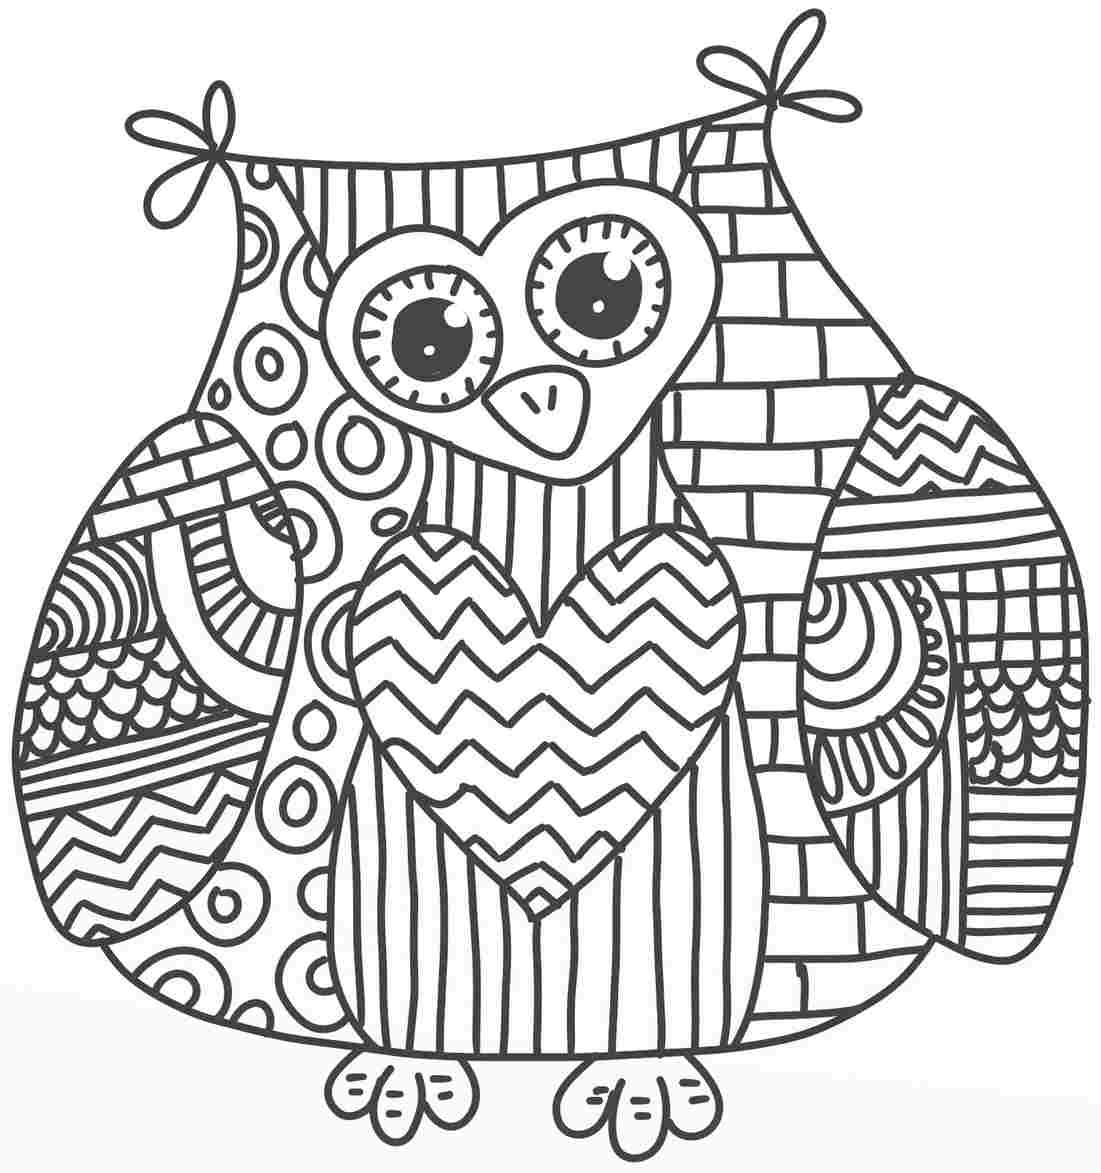 abstract owl coloring pages abstract owl coloring pages printable kids colouring abstract owl pages coloring